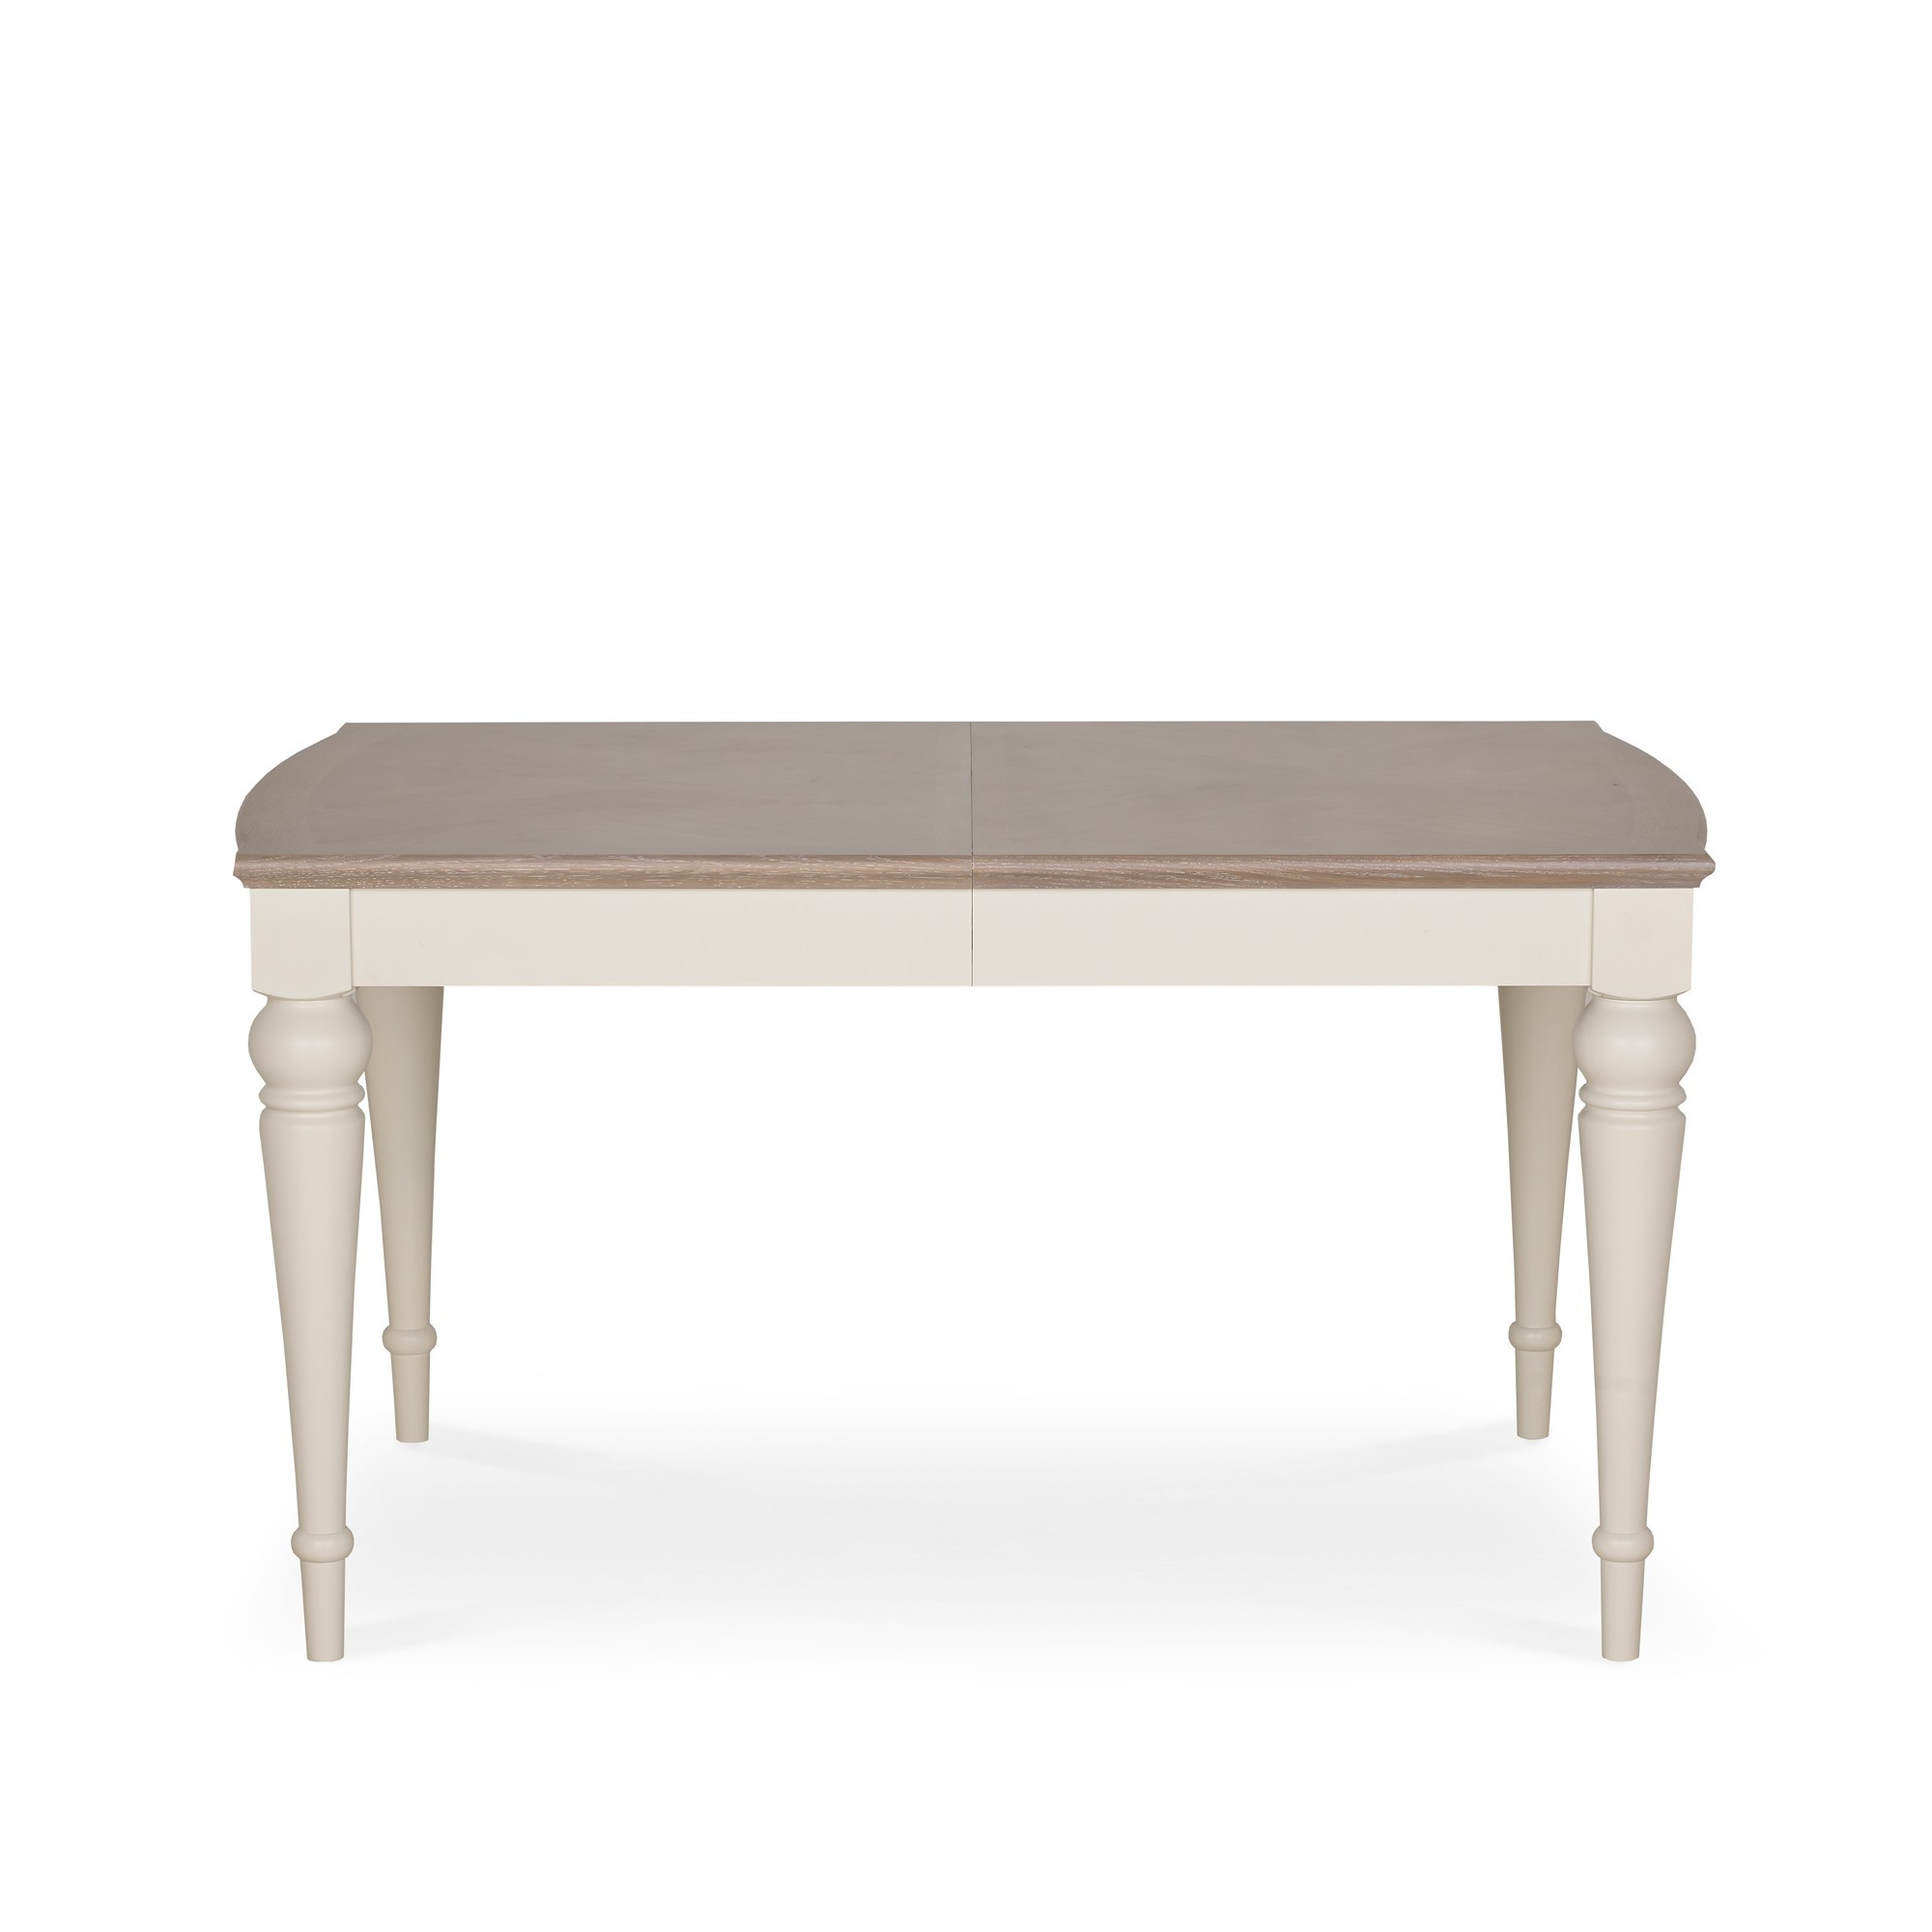 Cookes Collection Geneva 4 6 Extending Dining Table  : 3355 from www.cookesfurniture.co.uk size 2000 x 2000 jpeg 125kB